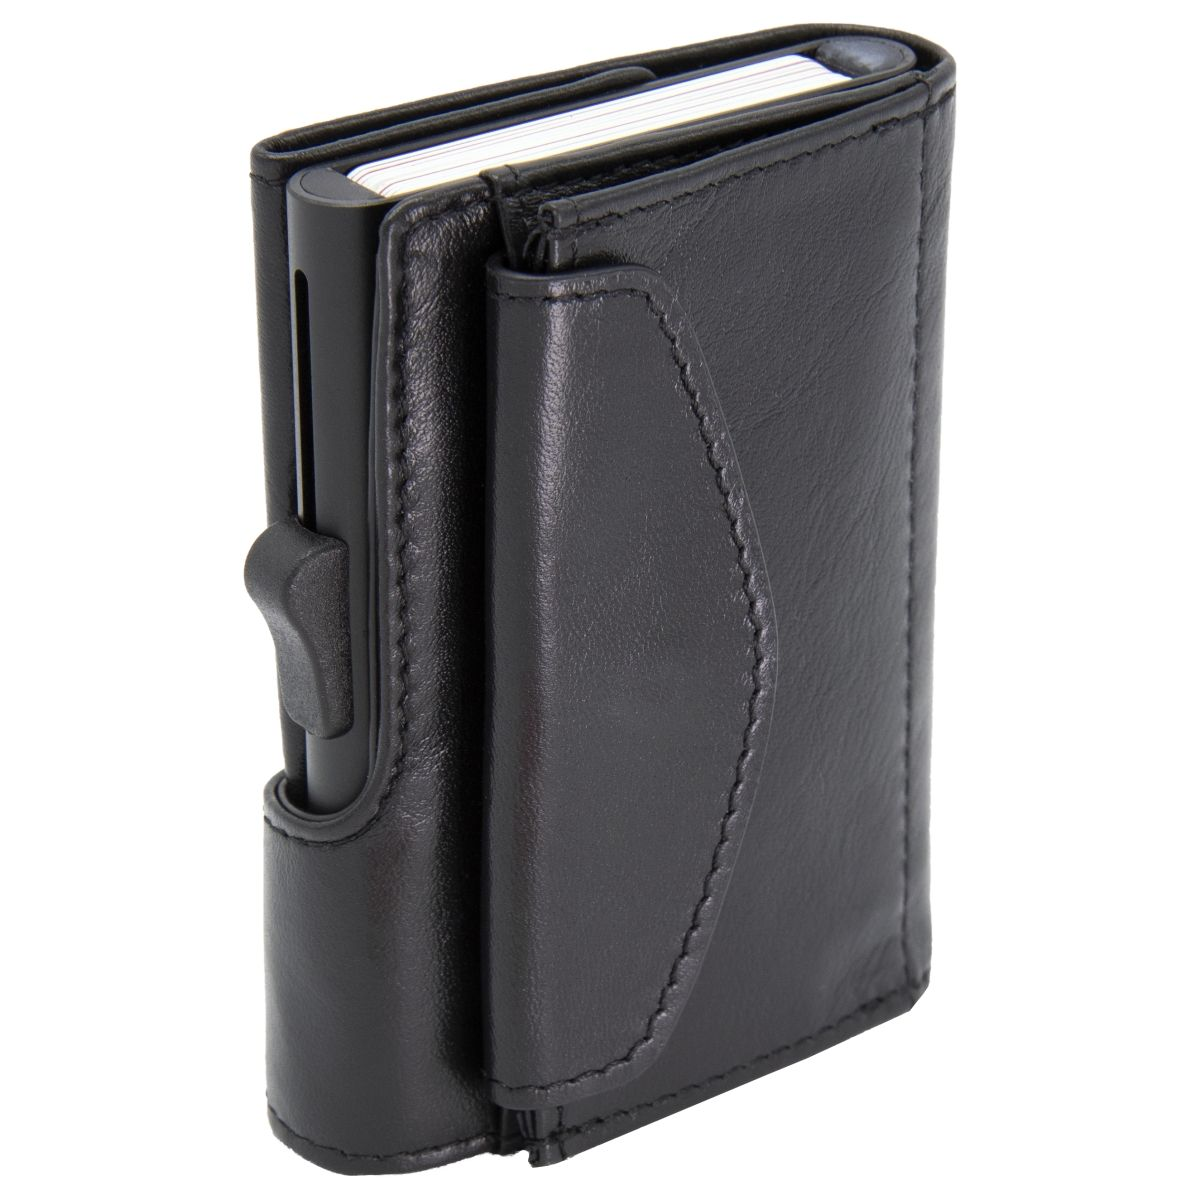 C-Secure XL Aluminum Wallet with Genuine Leather and Coins Pocket - Black